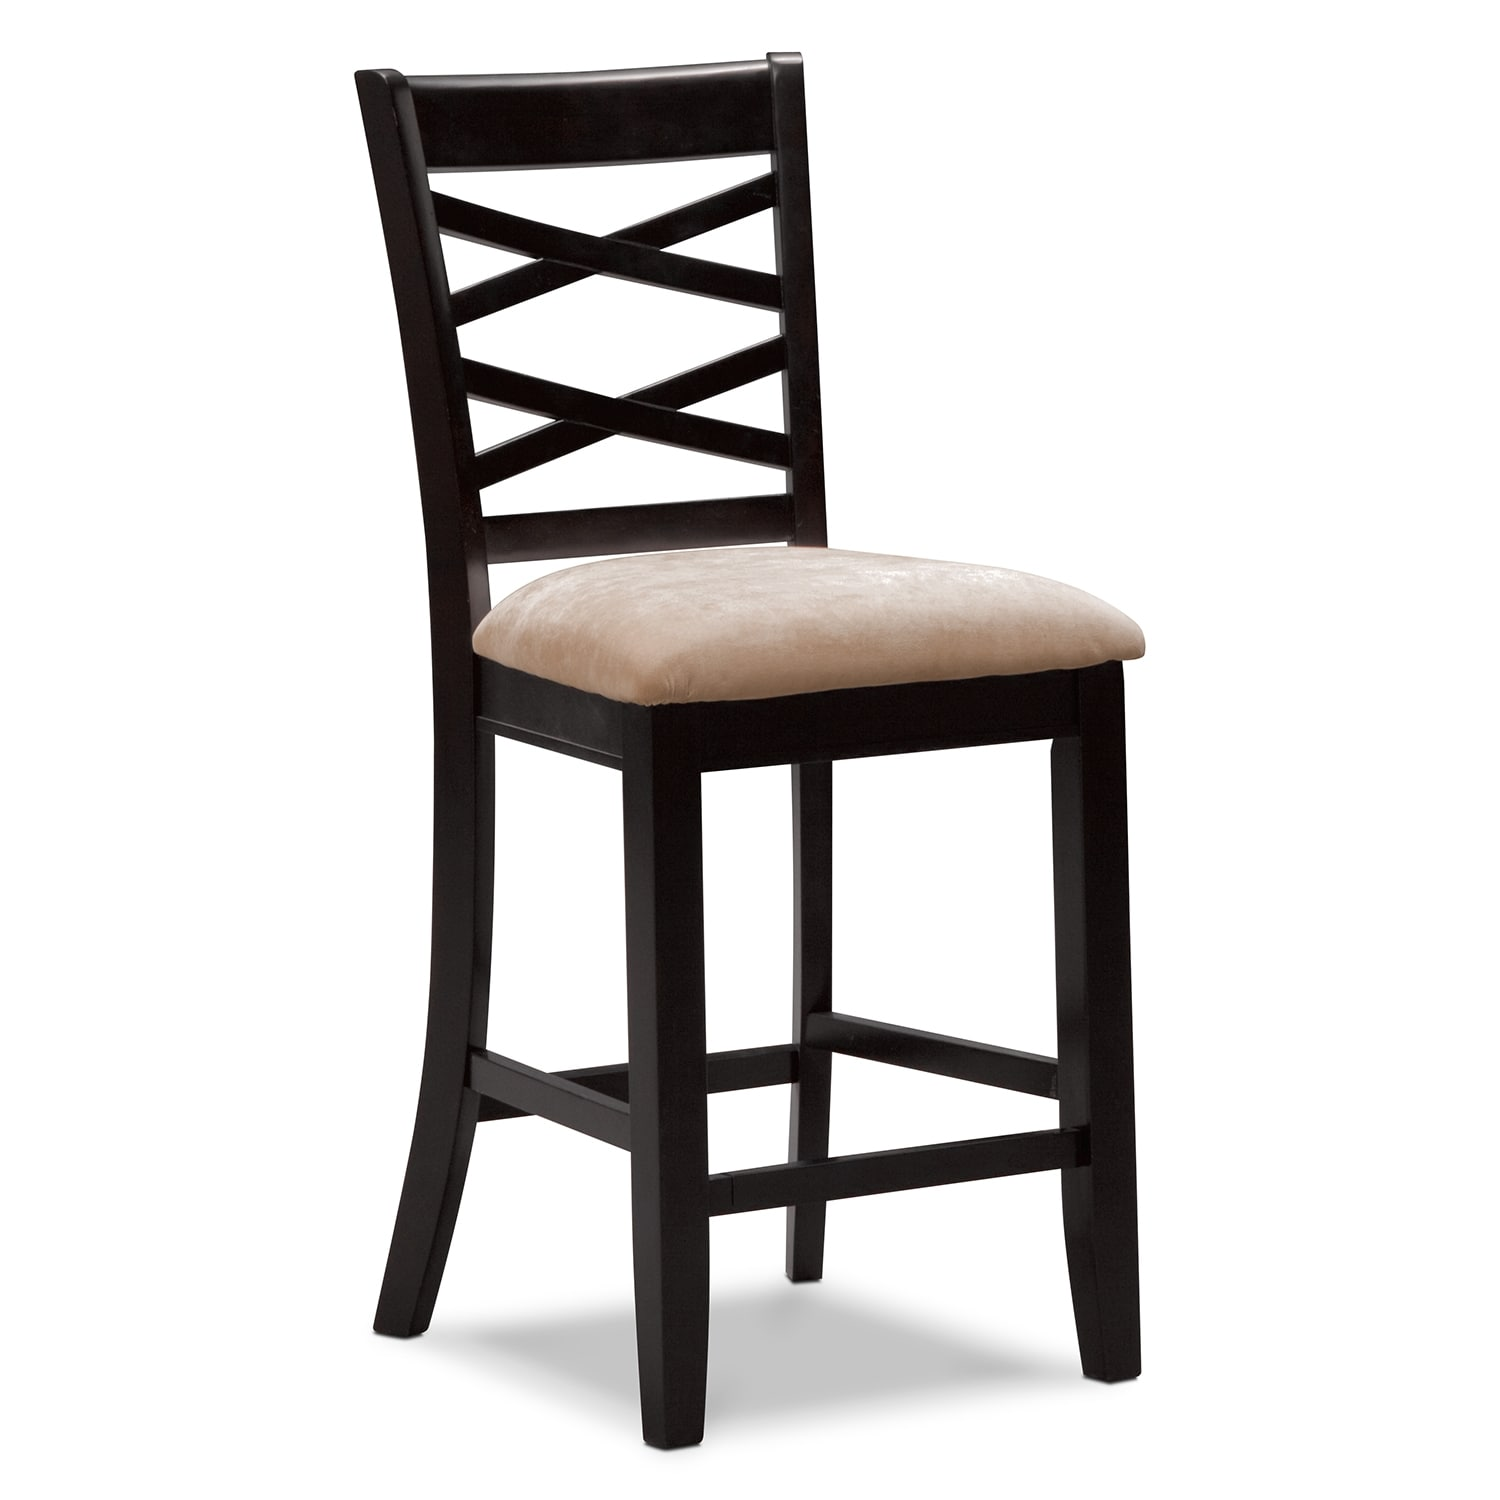 Americana Espresso Counter-Height Stool